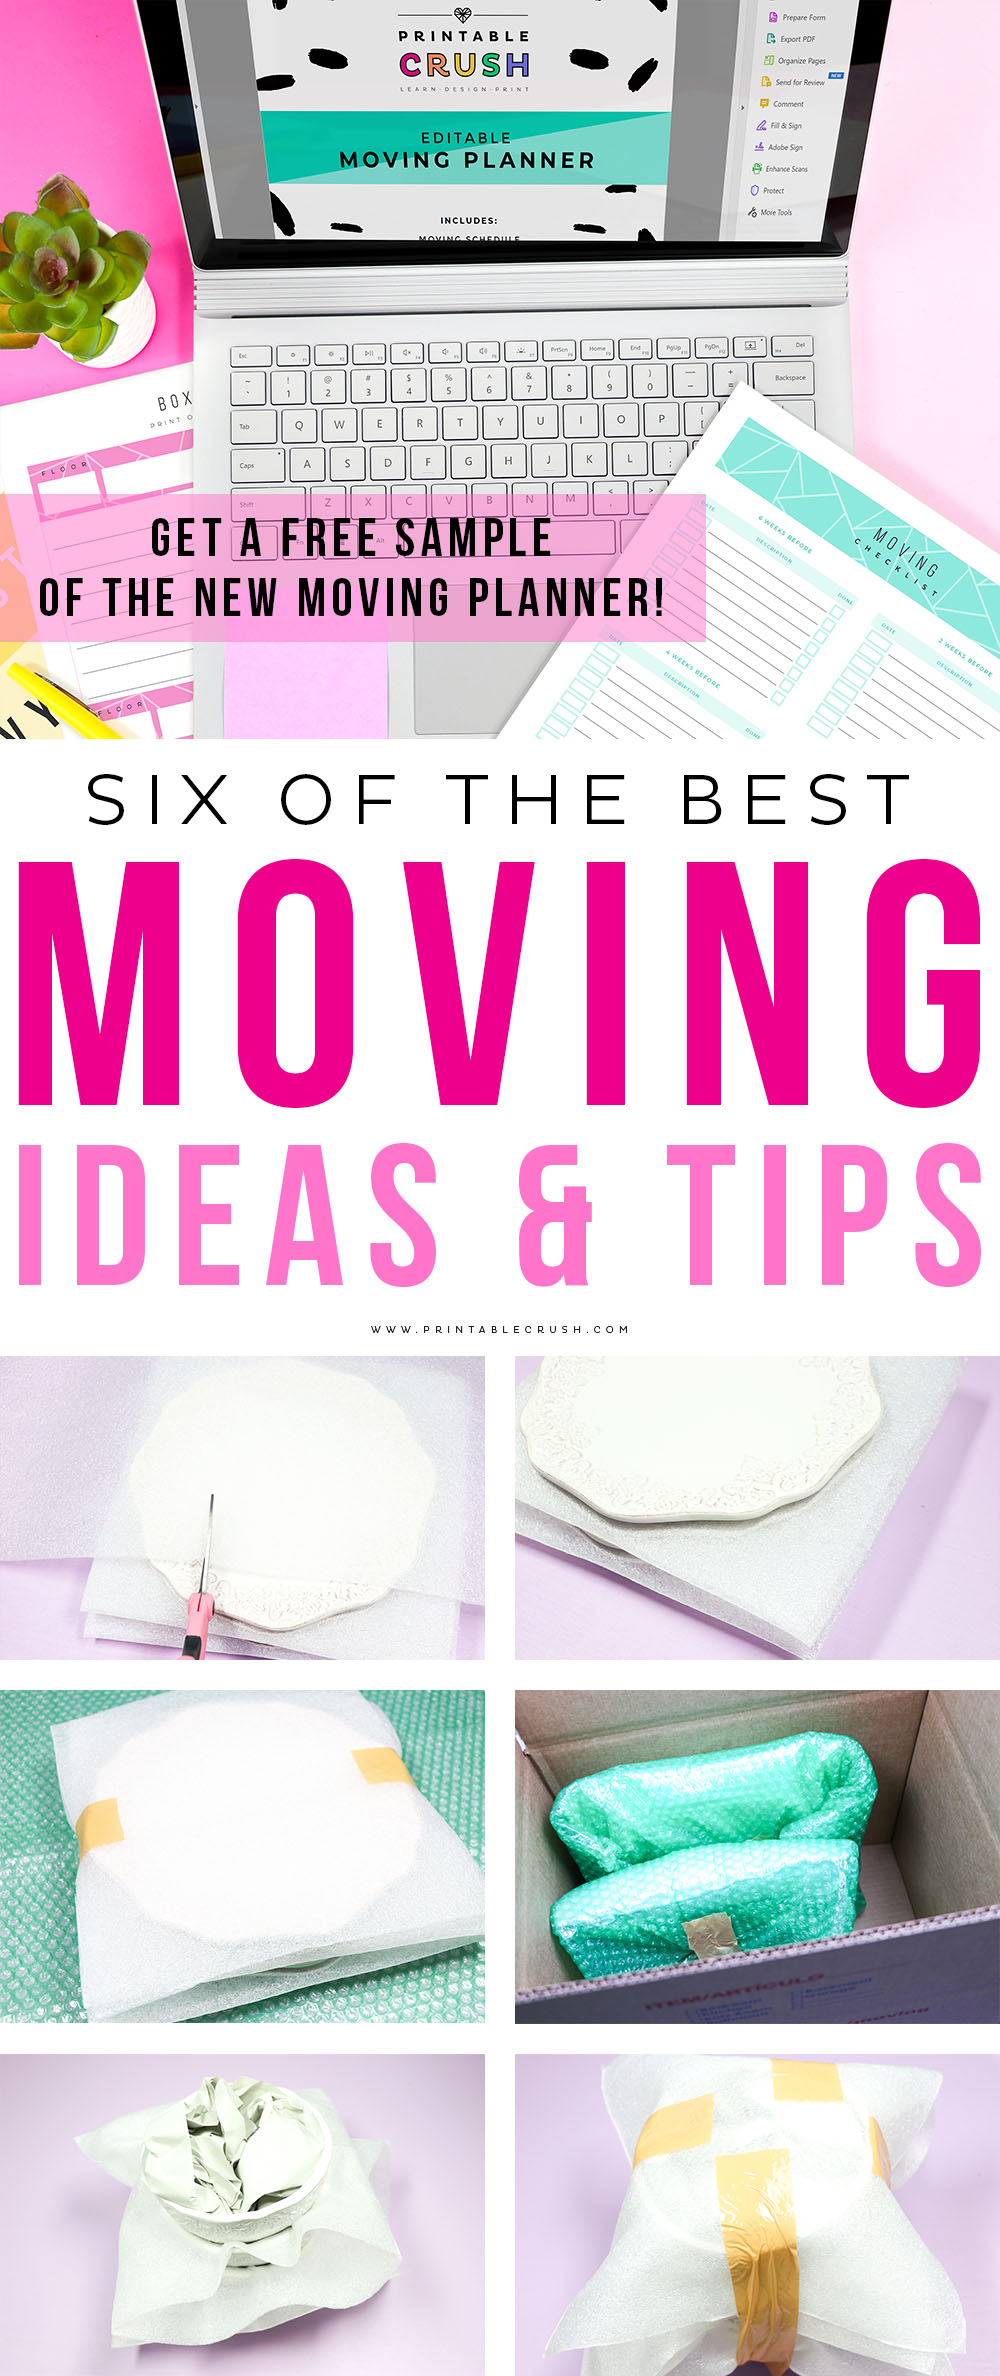 Have a less stressful move with these Moving Ideas and Tips. Plus try a sample of my new Moving Printable Planner Set! #movingtips #movingplanner #movingideas #moving #movingprintable